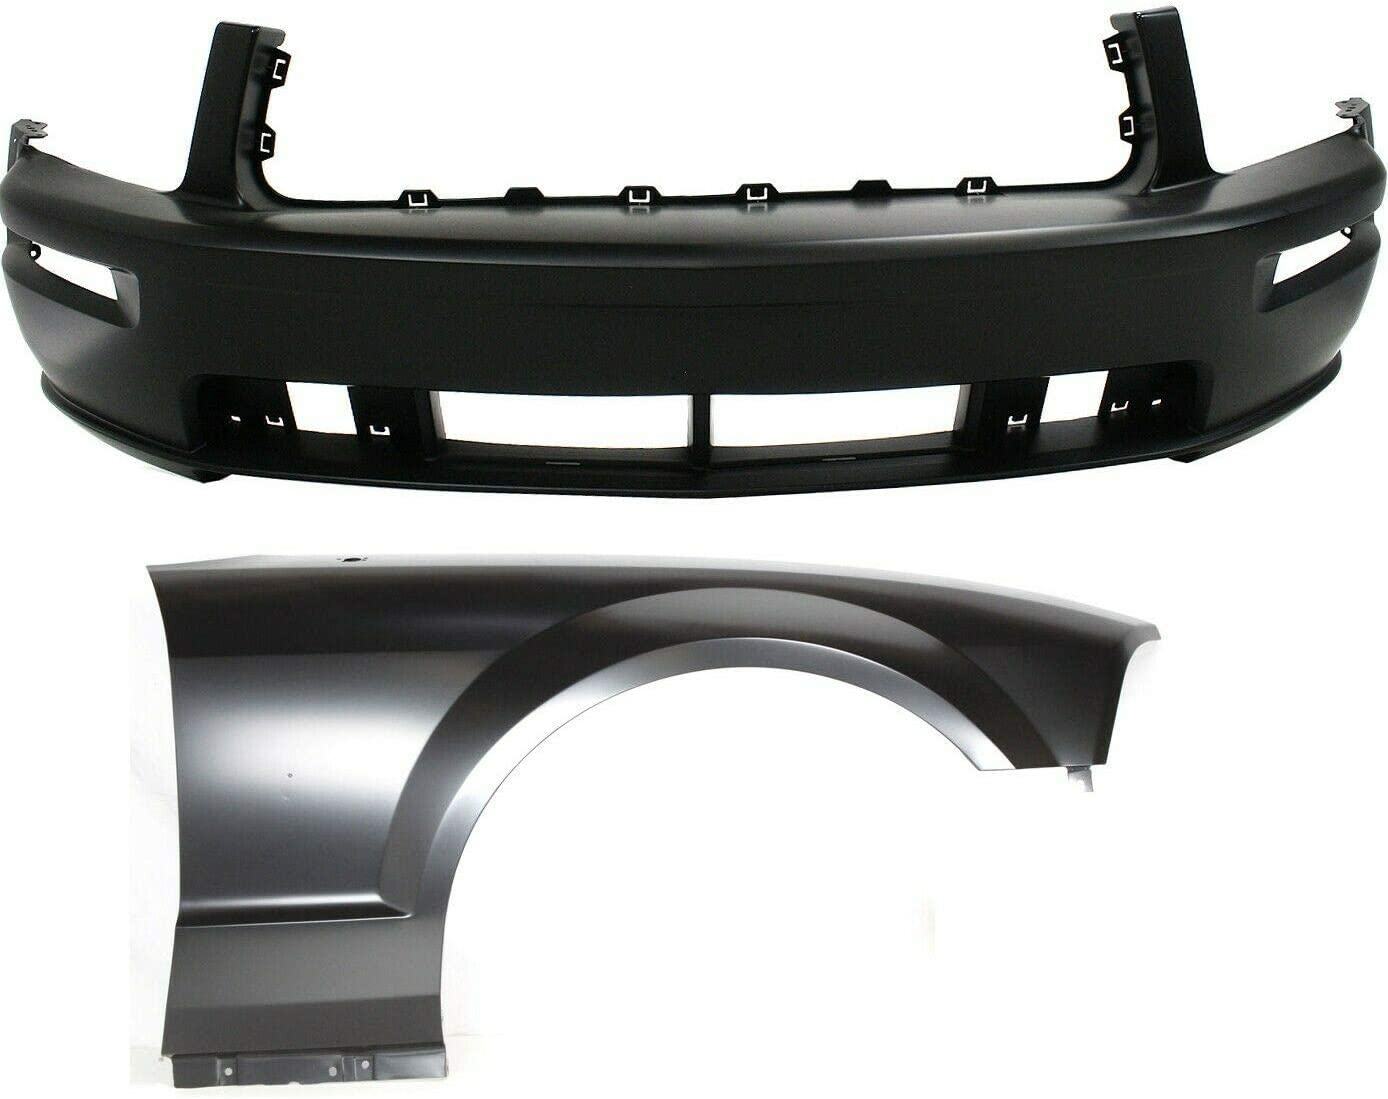 JENCH Bumper Cover Max 44% OFF Kit Compatible 4 years warranty with 2005-2009 Fr Ford Mustang